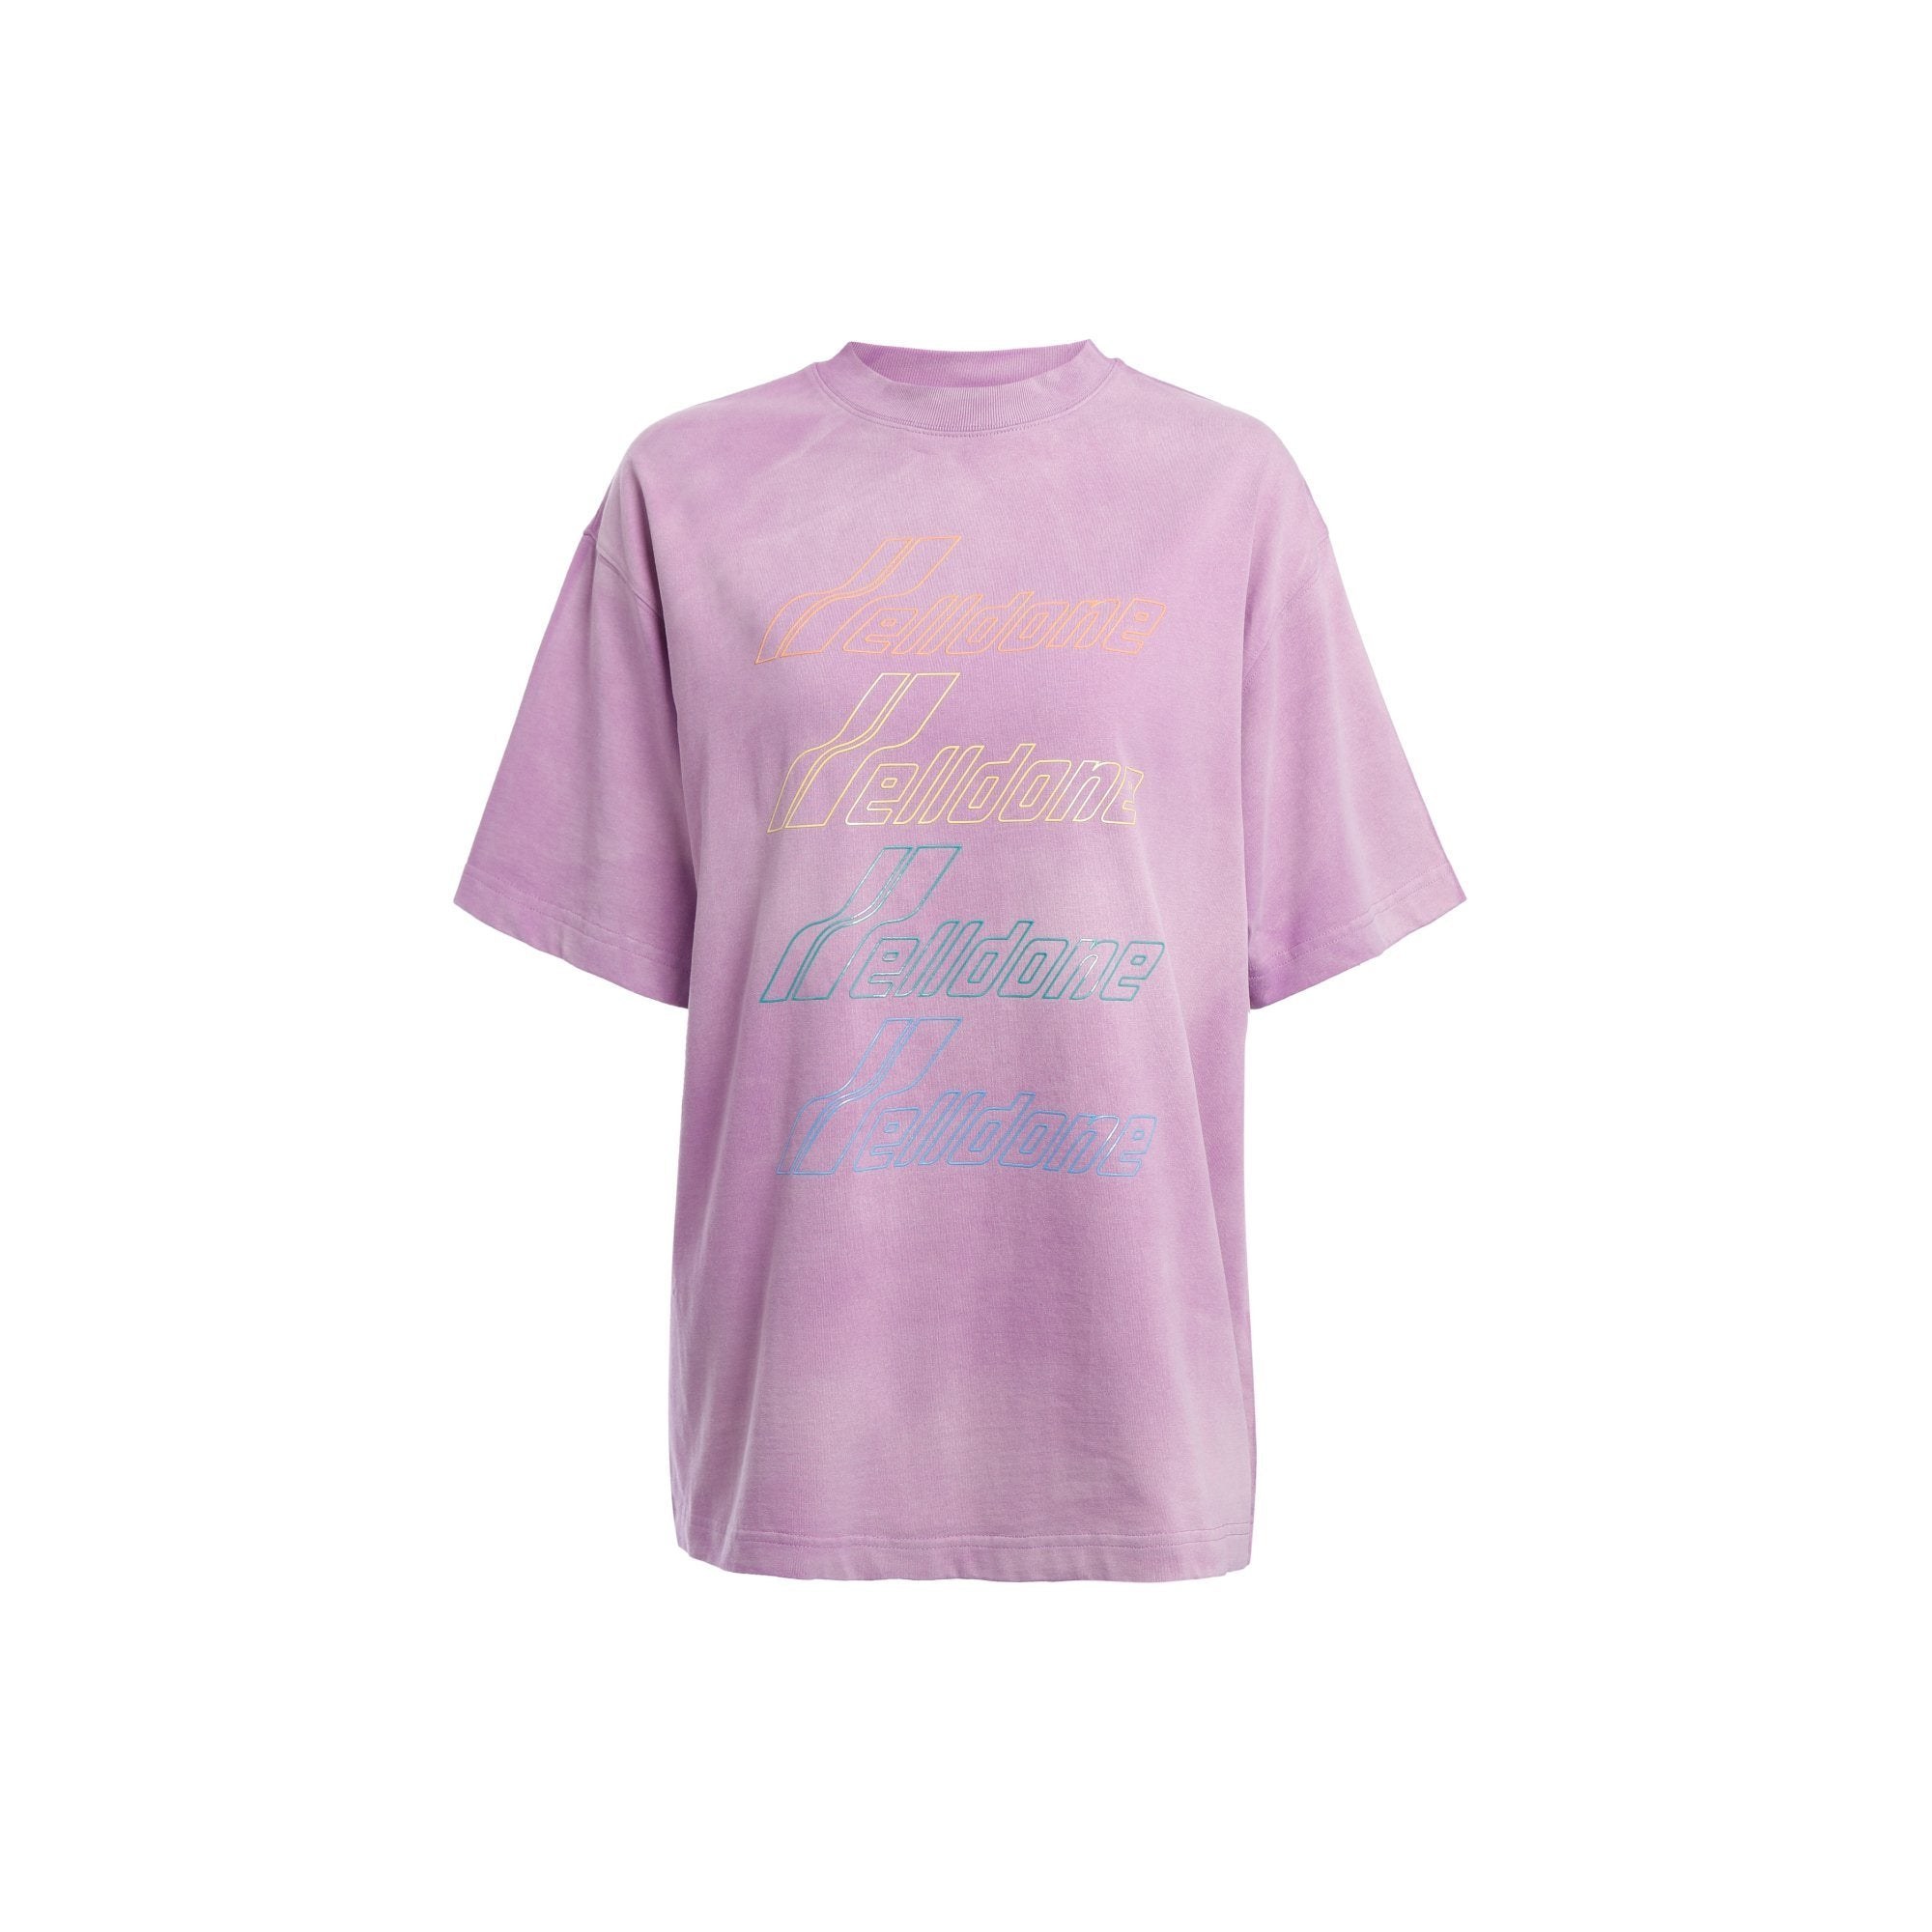 WE11DONE Pink Front Logo T-Shirt | MADA IN CHINA